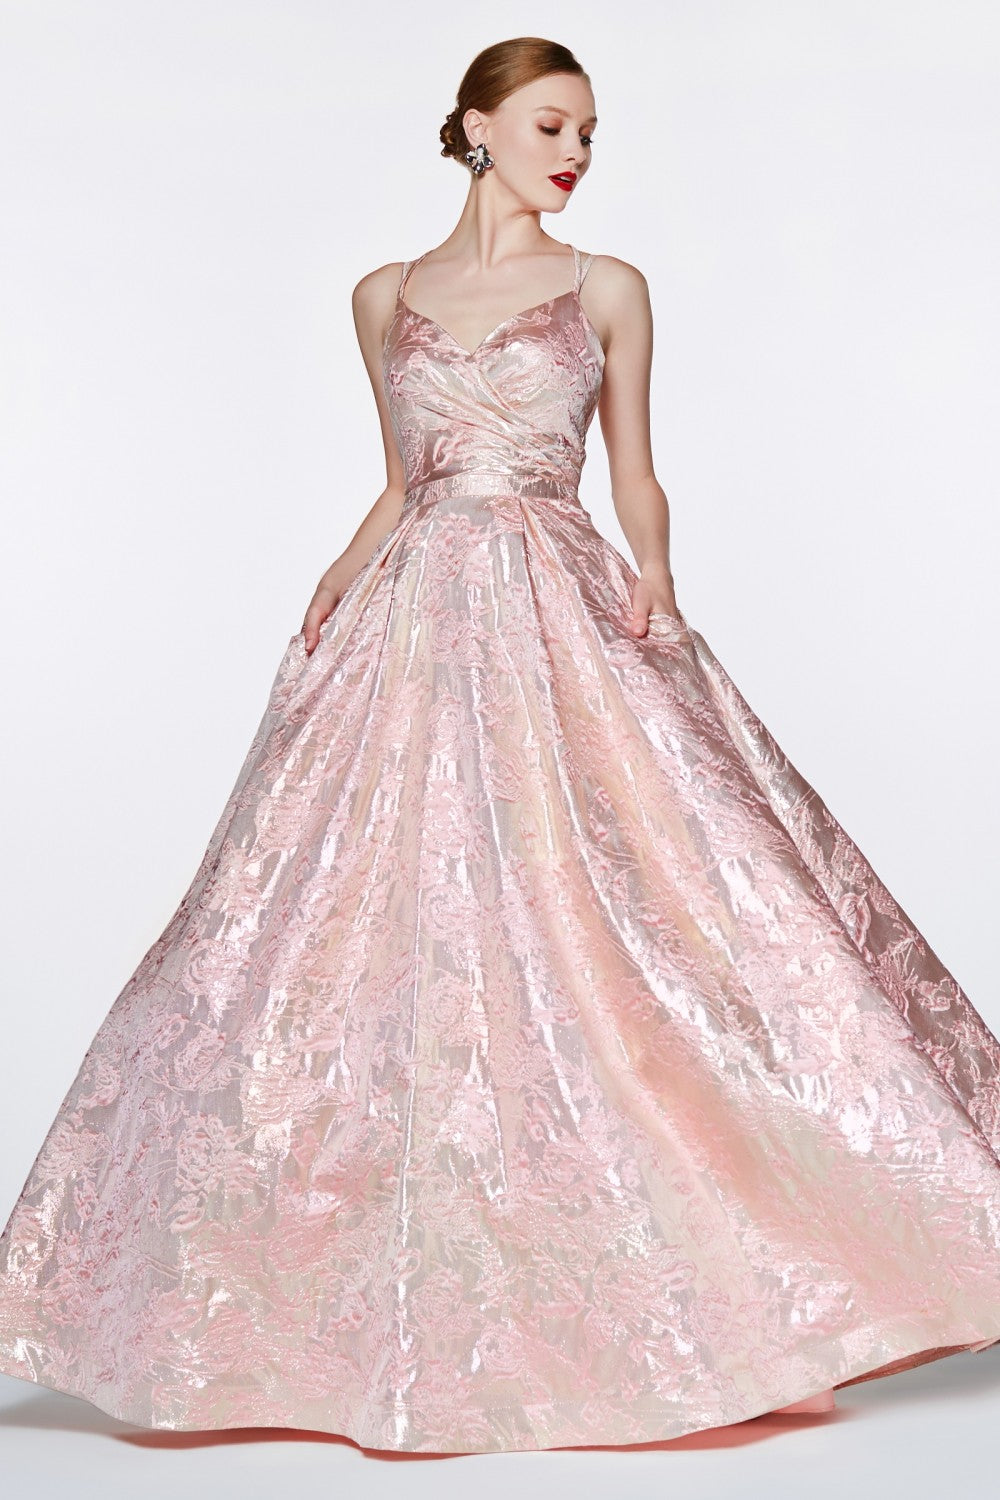 Brocade Ball Gown With Gathered Sweetheart Neckline And Pockets